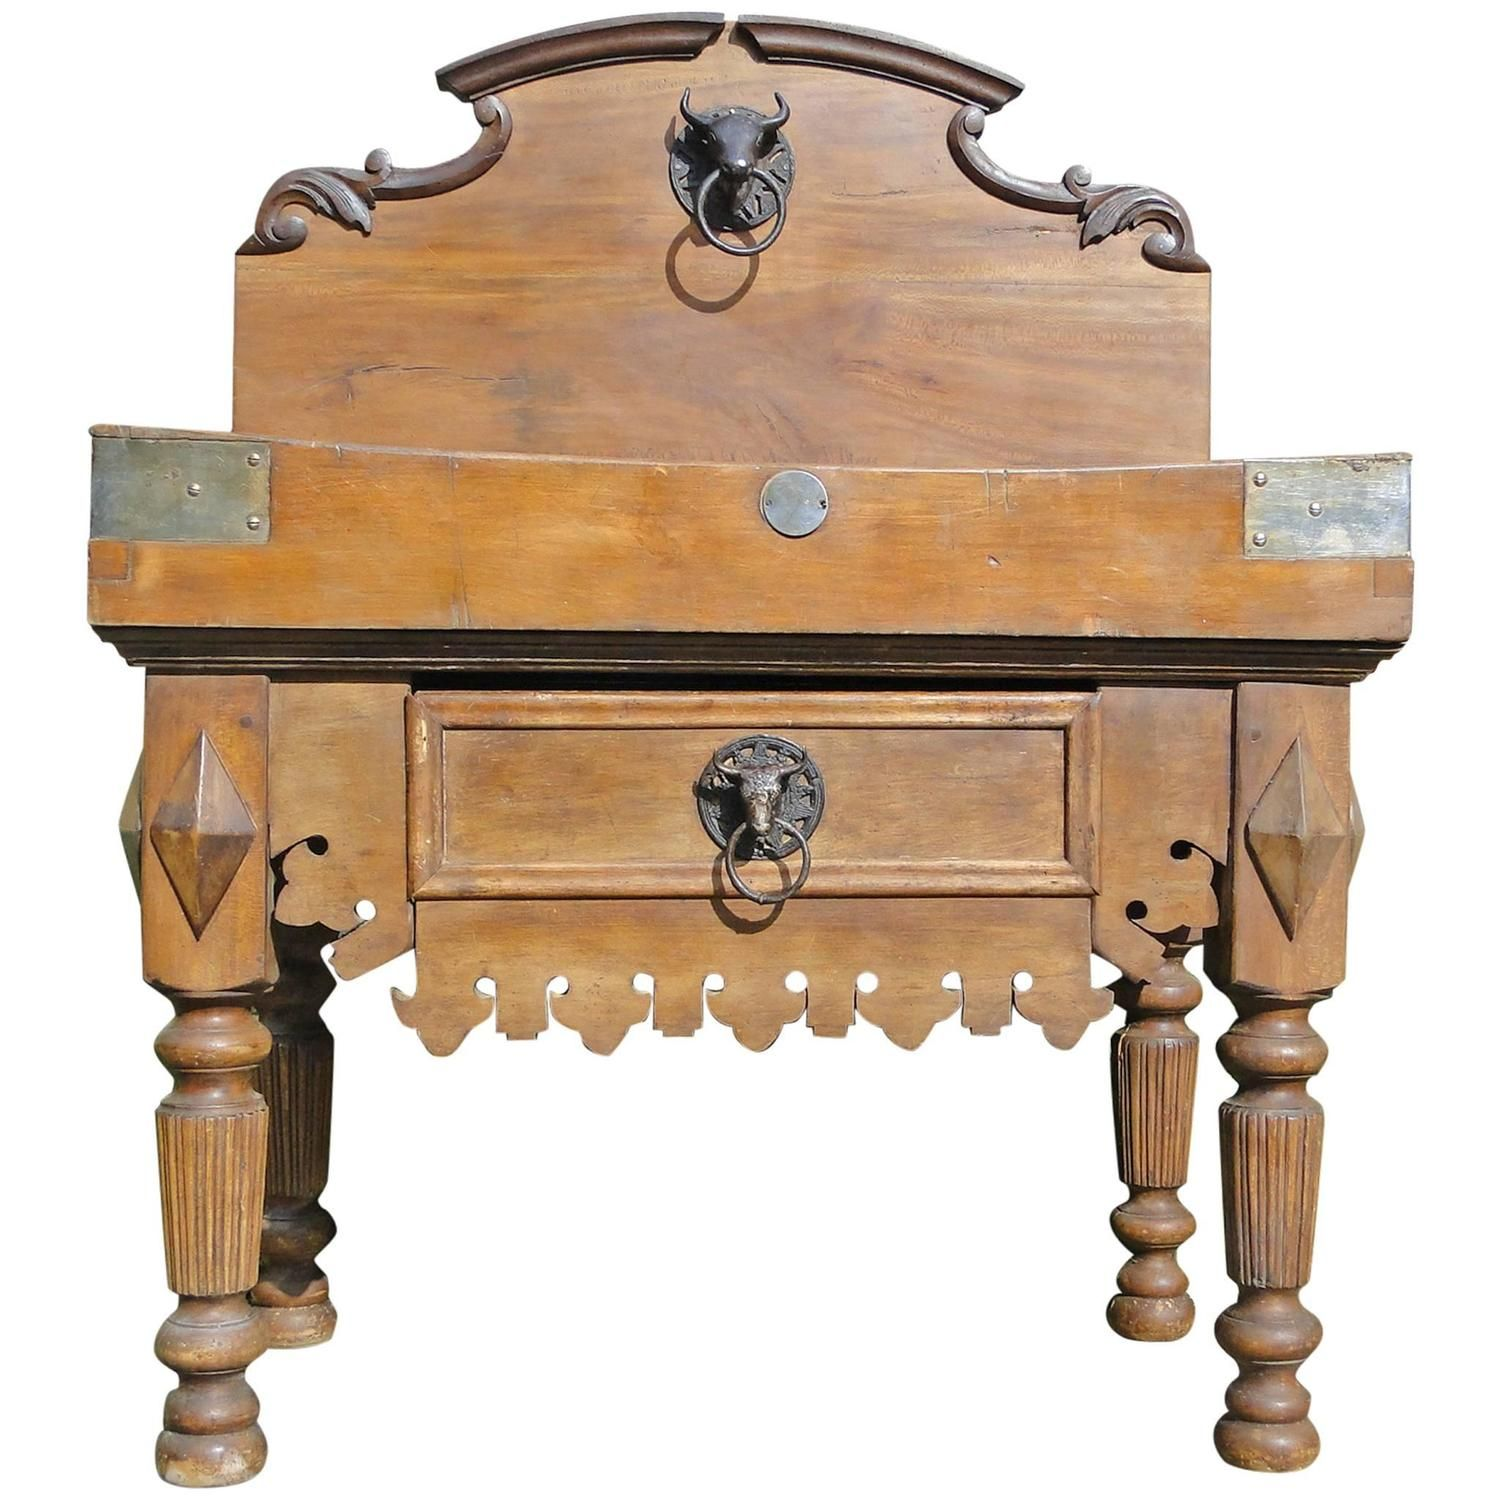 19th Century French Butcher Block From Paris